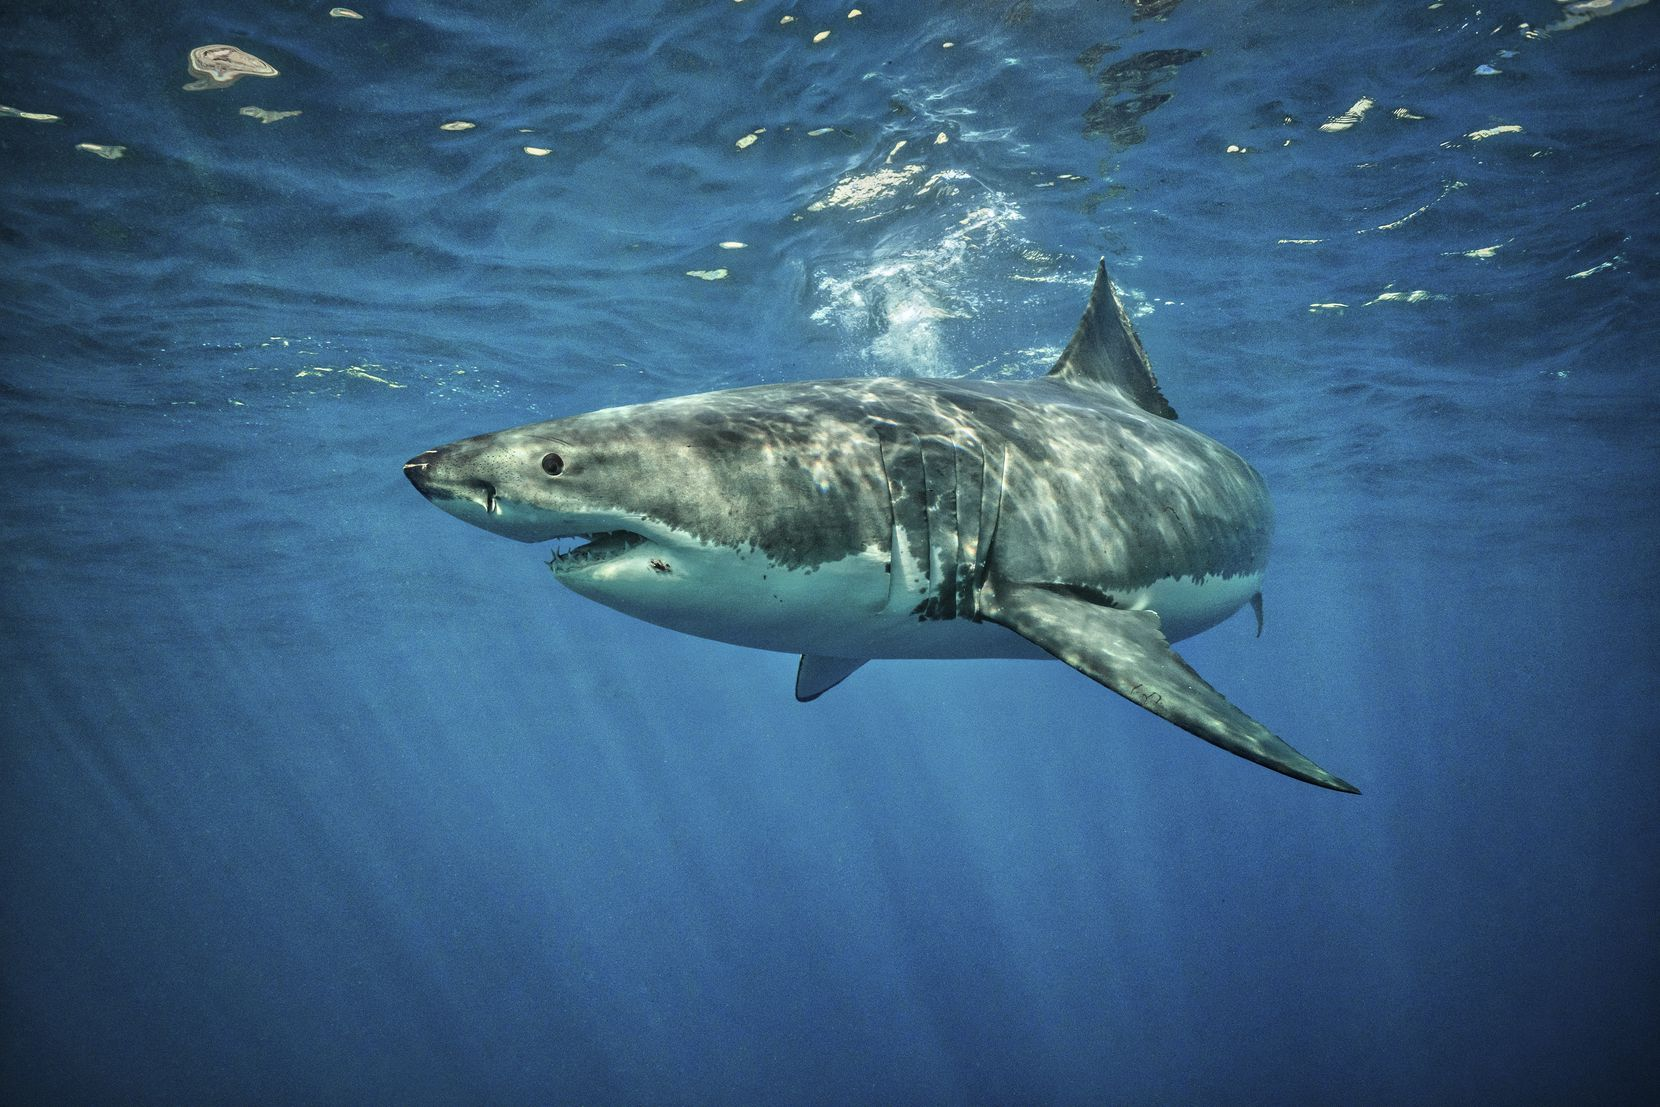 The odds of an unprovoked shark attack are about 1 in 11.5 million, says the Florida Program for Shark Research.